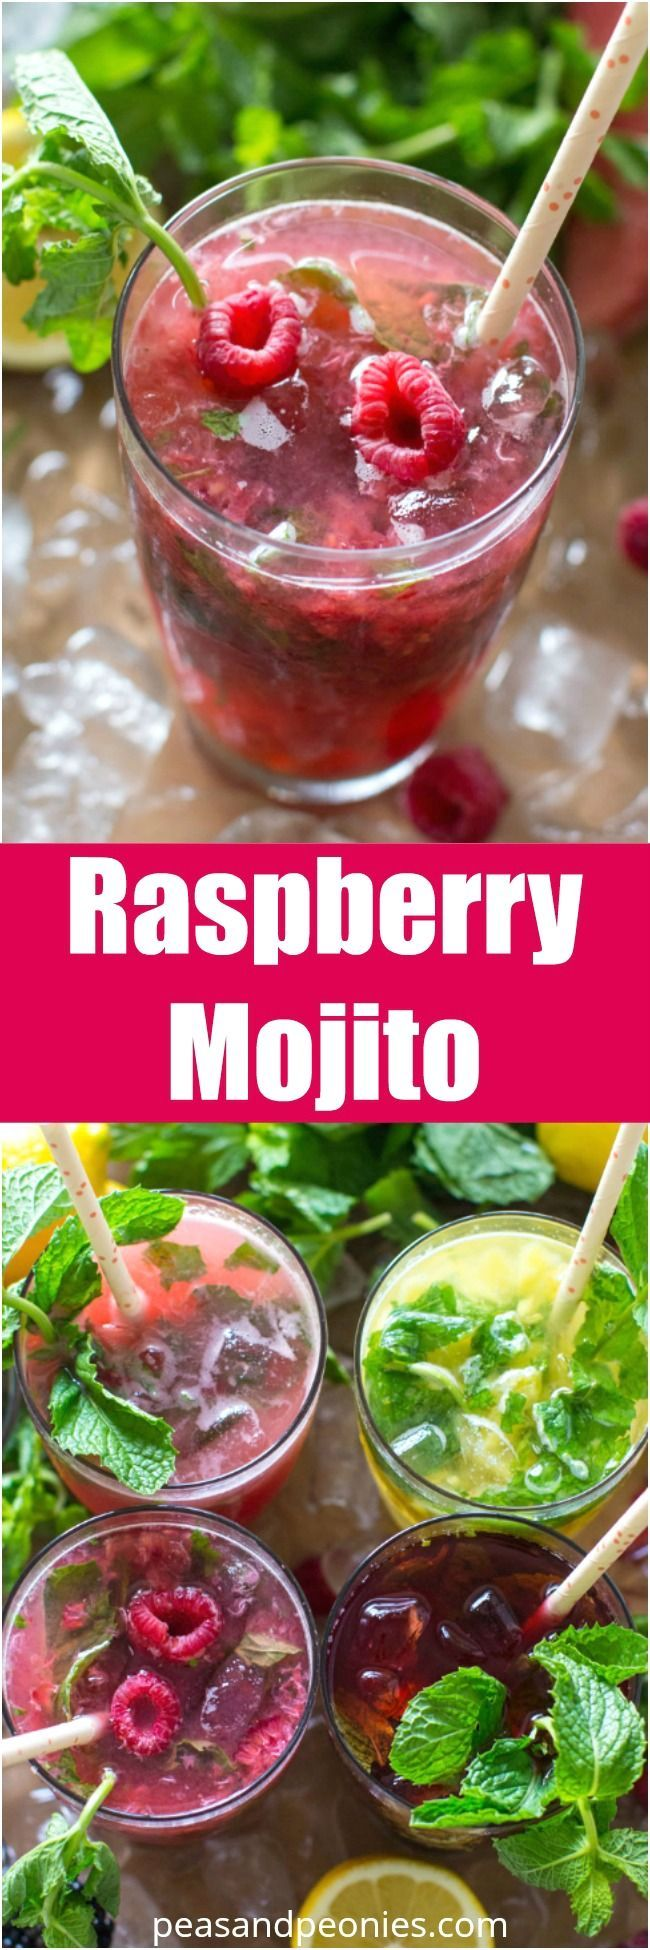 Fruit Mojitos are so easy to make, they are also pretty and refreshing, the perfect summer drink. Raspberry Mojito made with fresh raspberries.